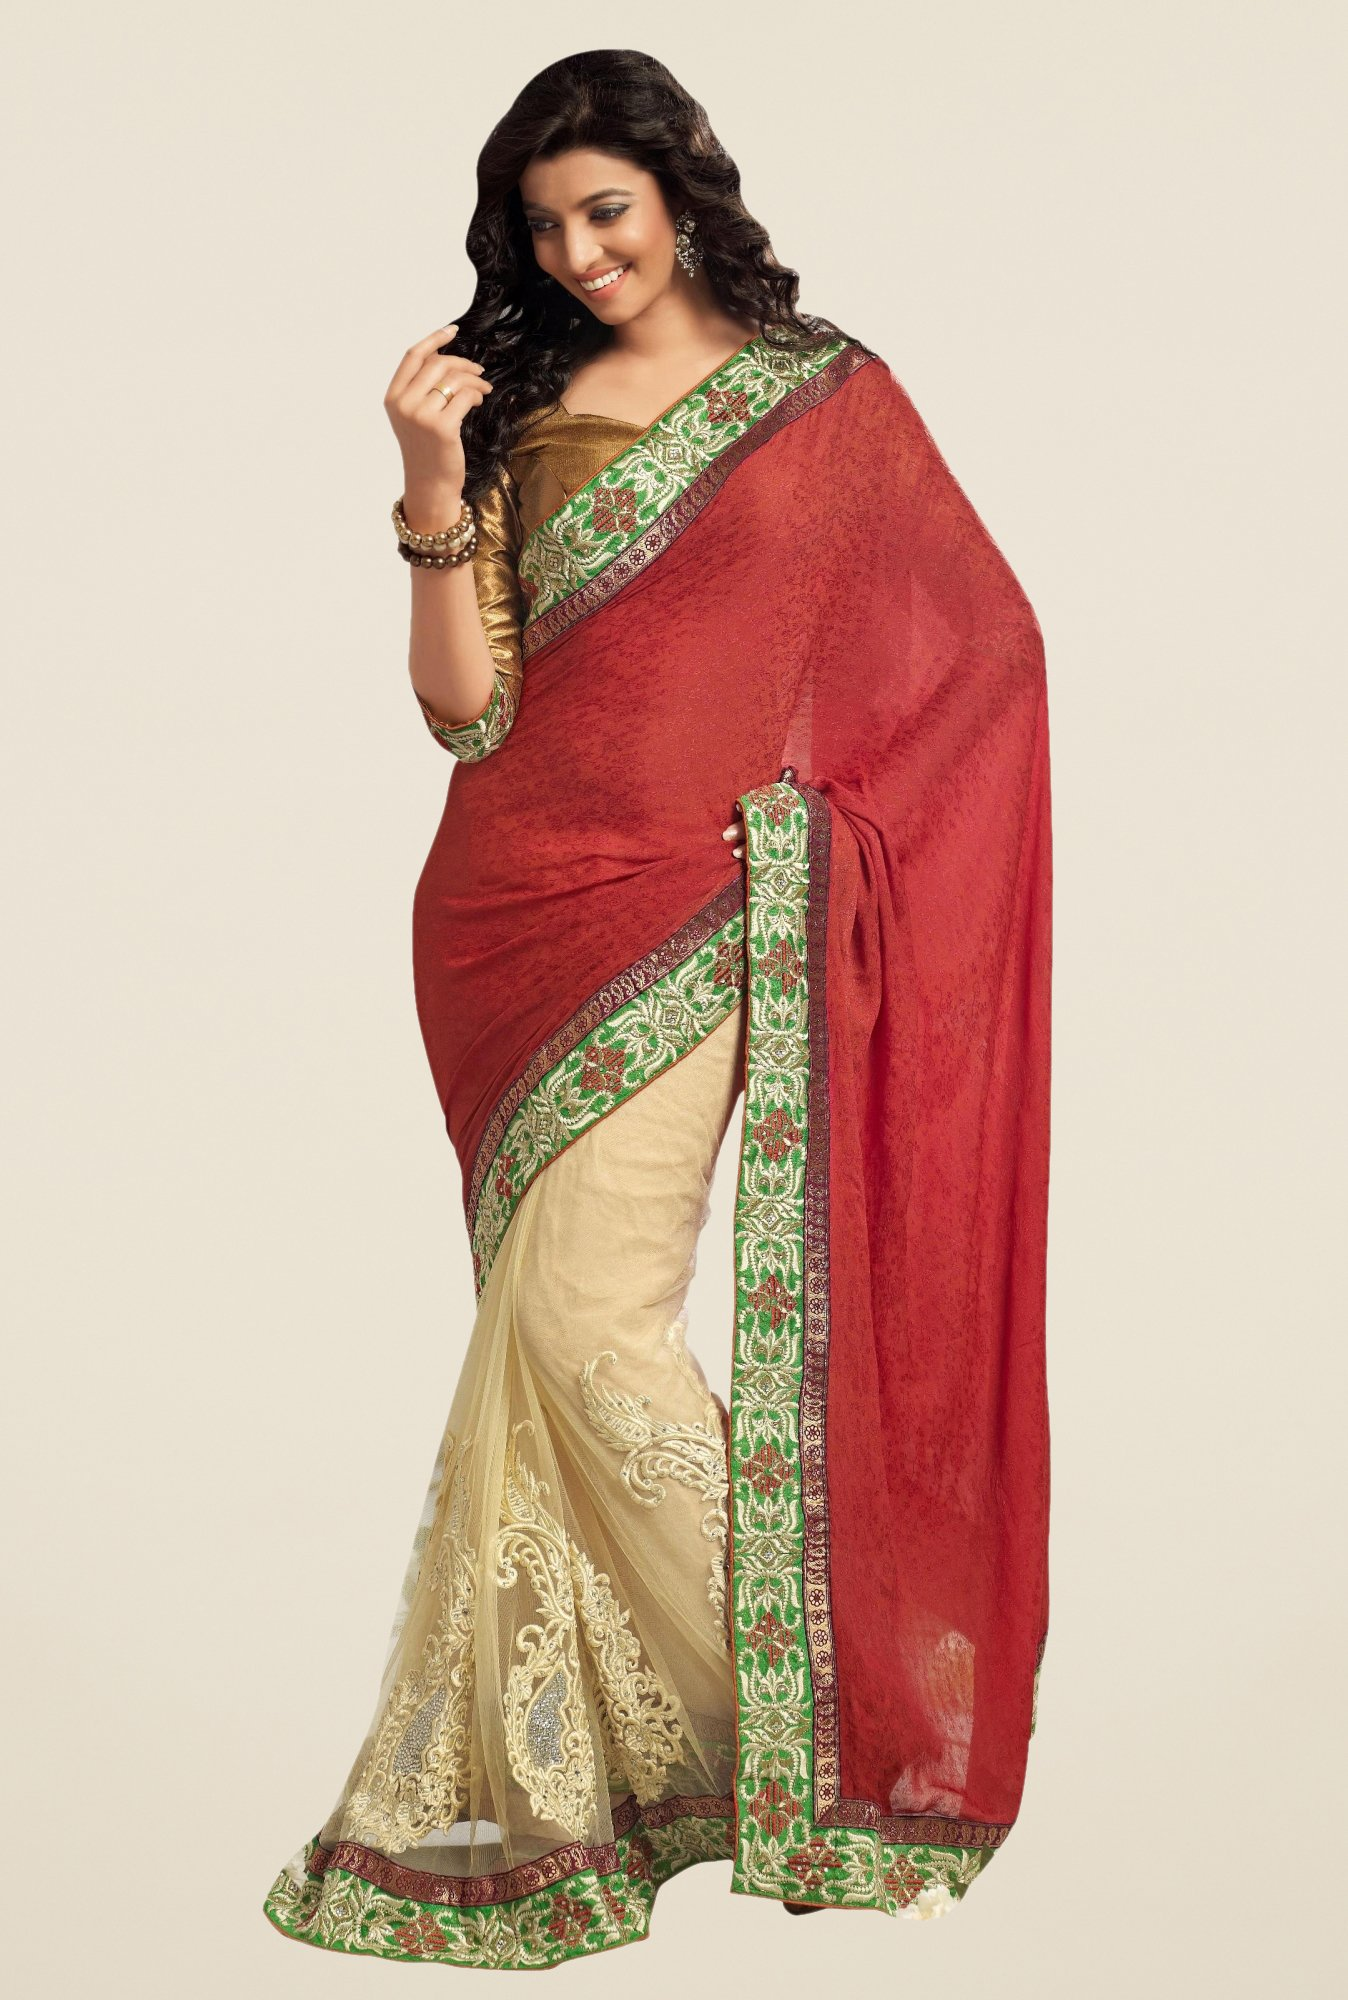 Triveni Luxurious Beige & Maroon Crape Net Saree